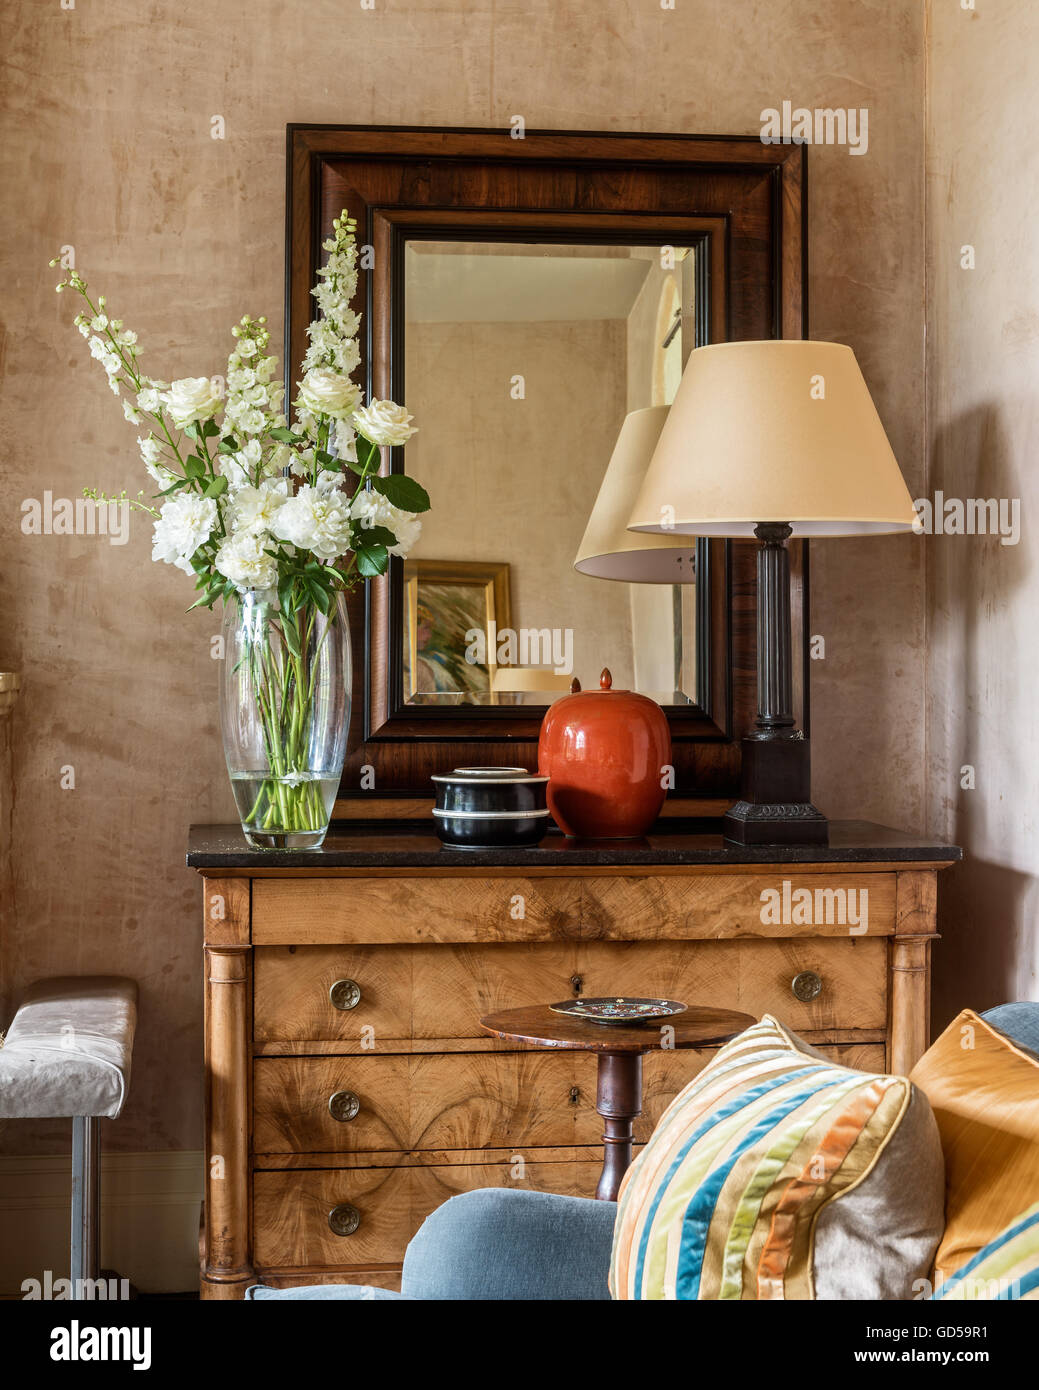 Antique wood framed mirror on chest of drawers with lamp and vase - Stock Image